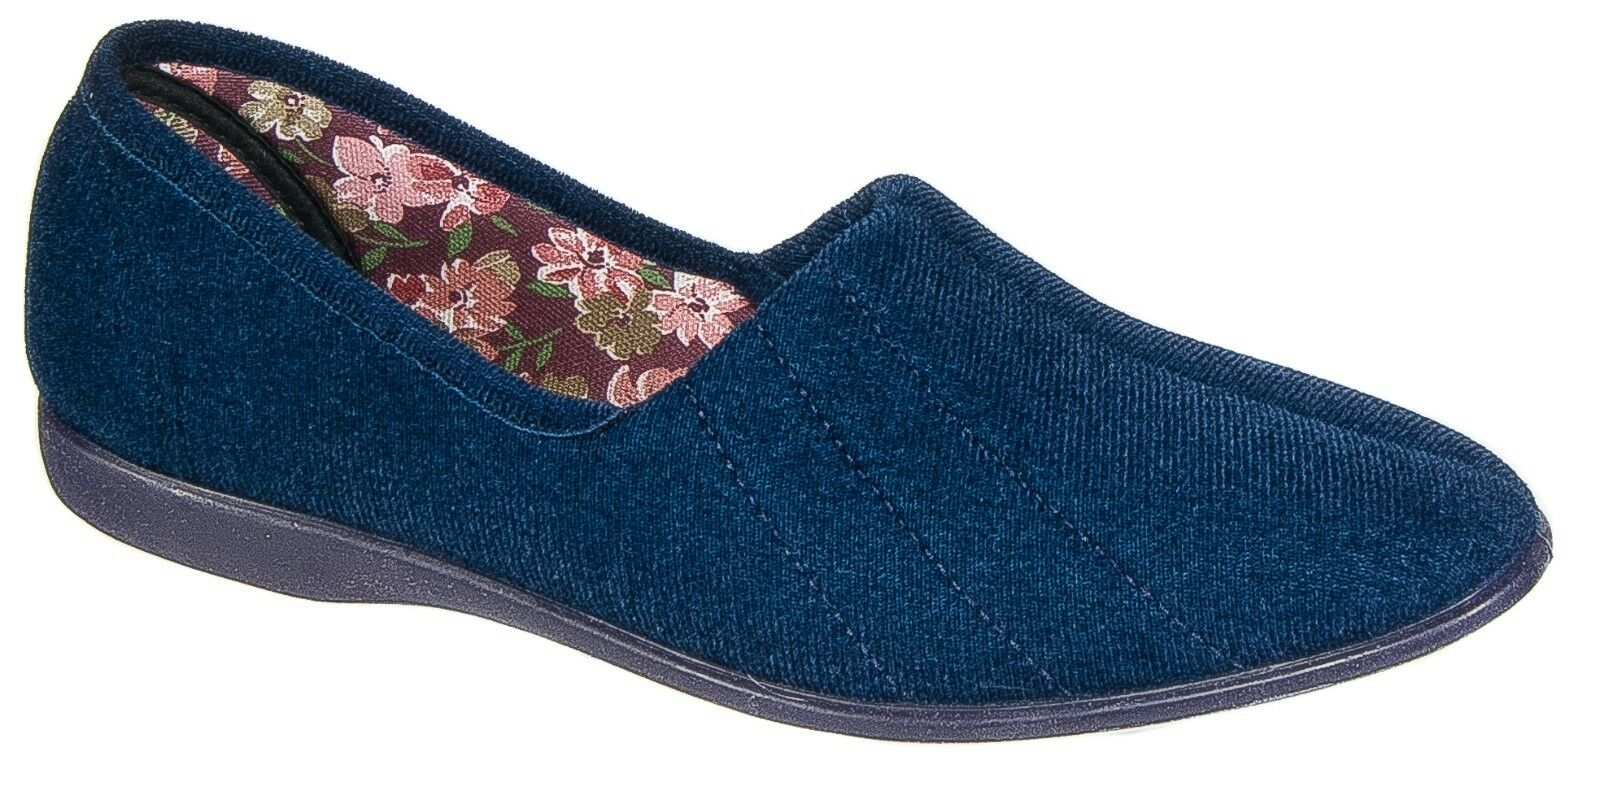 Womens Ladies Slip On Slippers / Navy Blue Textile Rubber Soled GBS 3 to 9